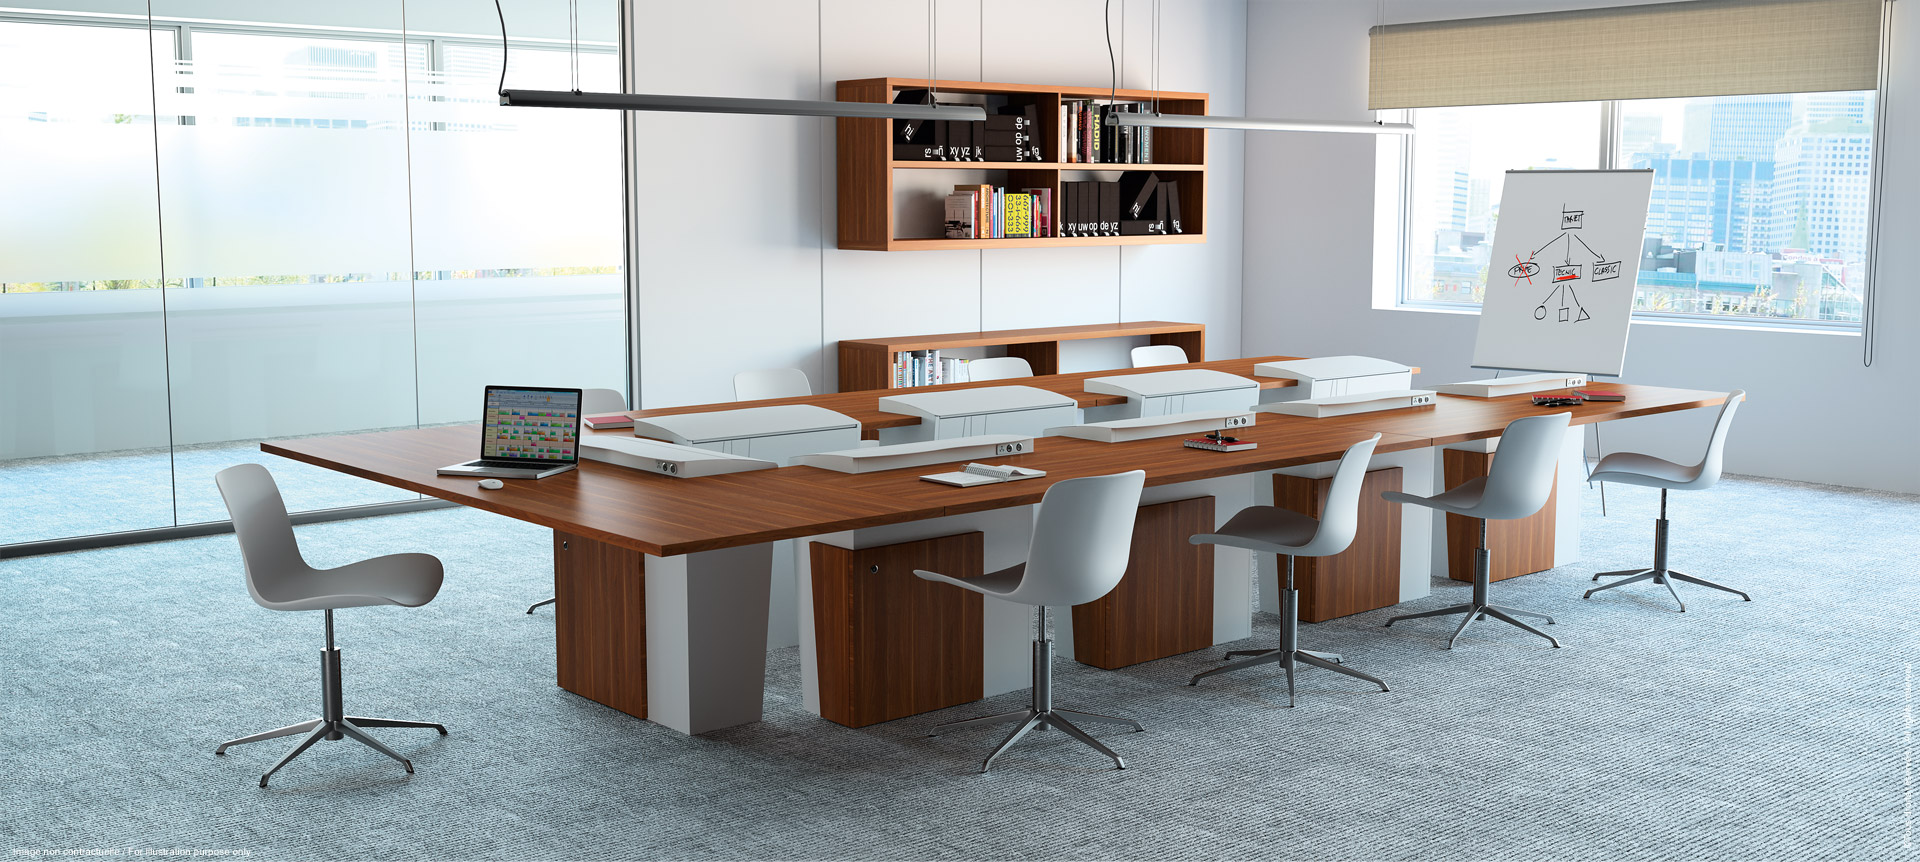 I-Rise - All-purpose meeting table